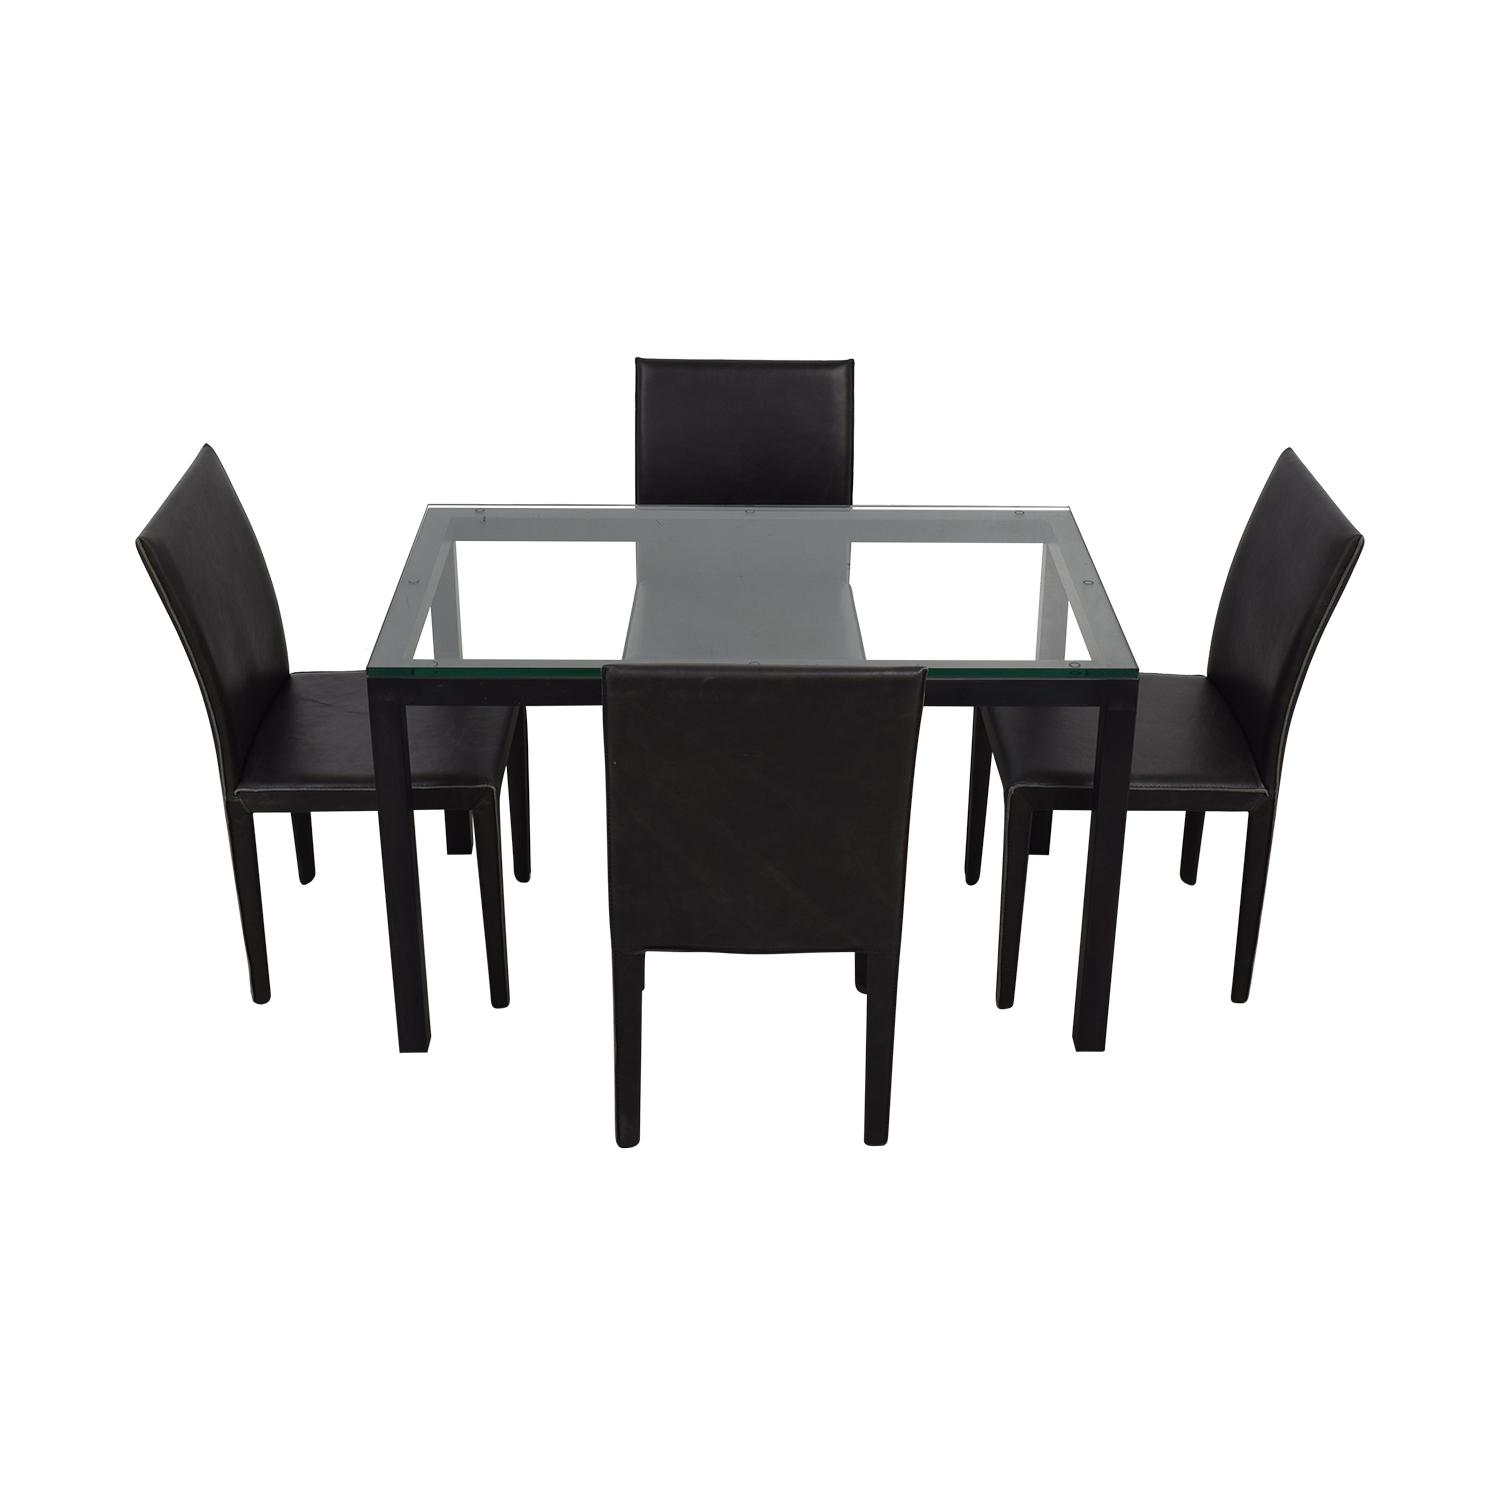 Crate & Barrel Crate & Barrel Maria Yee Glass and Black Dining Set for sale